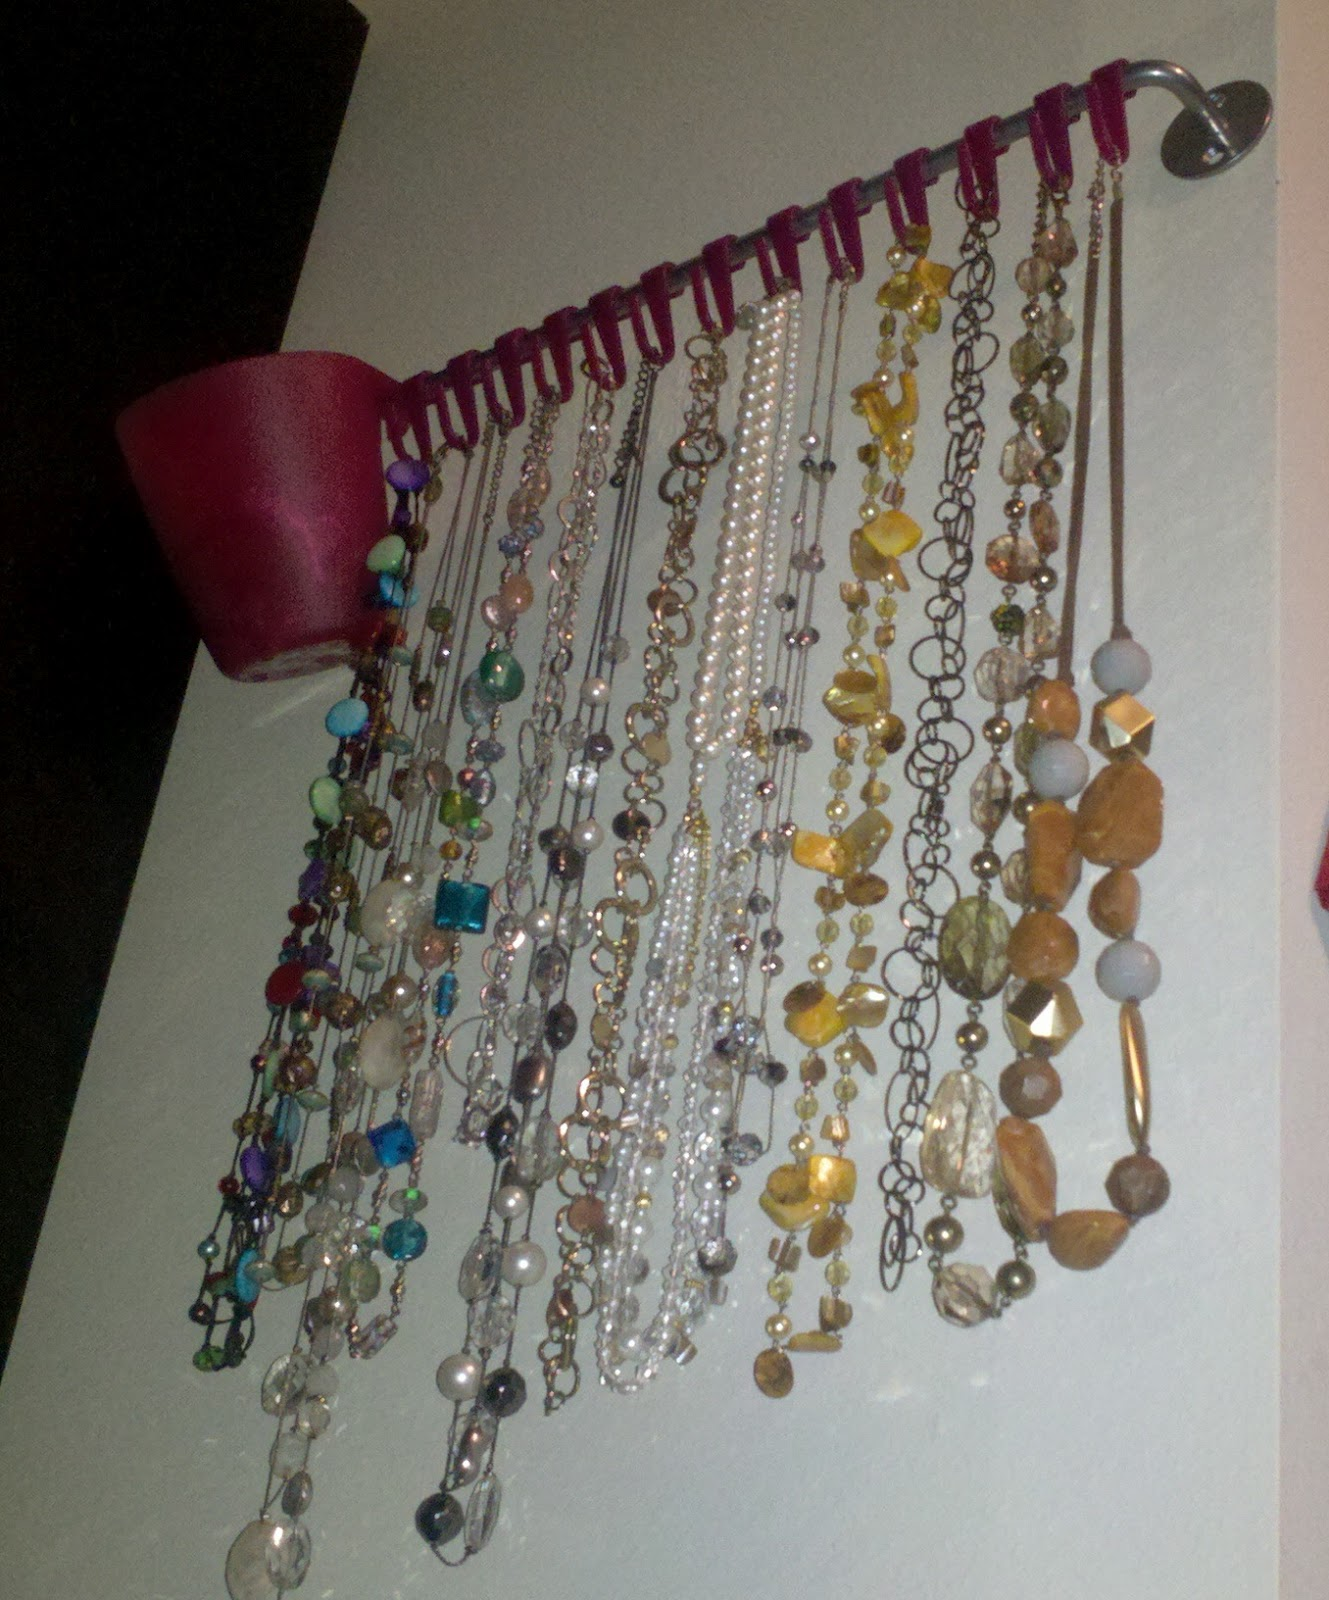 find inexpensive most vintage myshoplah valuable costume jewelry to jewellery places